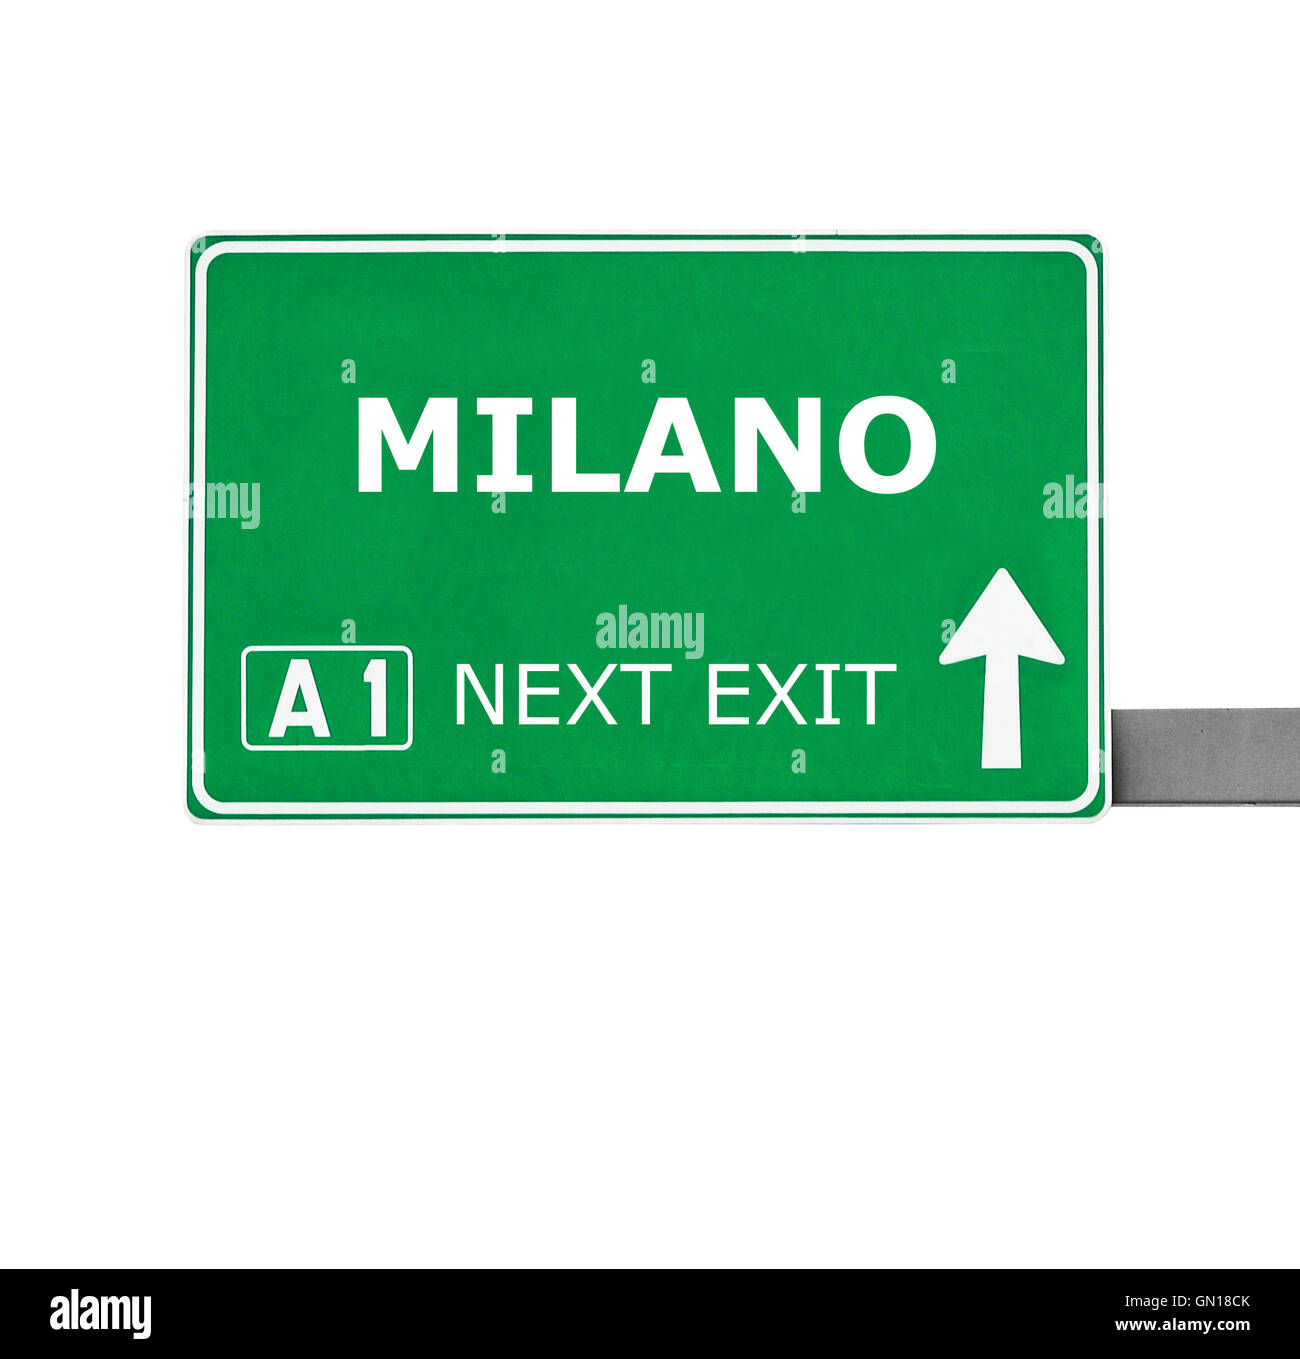 MILANO road sign isolated on white - Stock Image